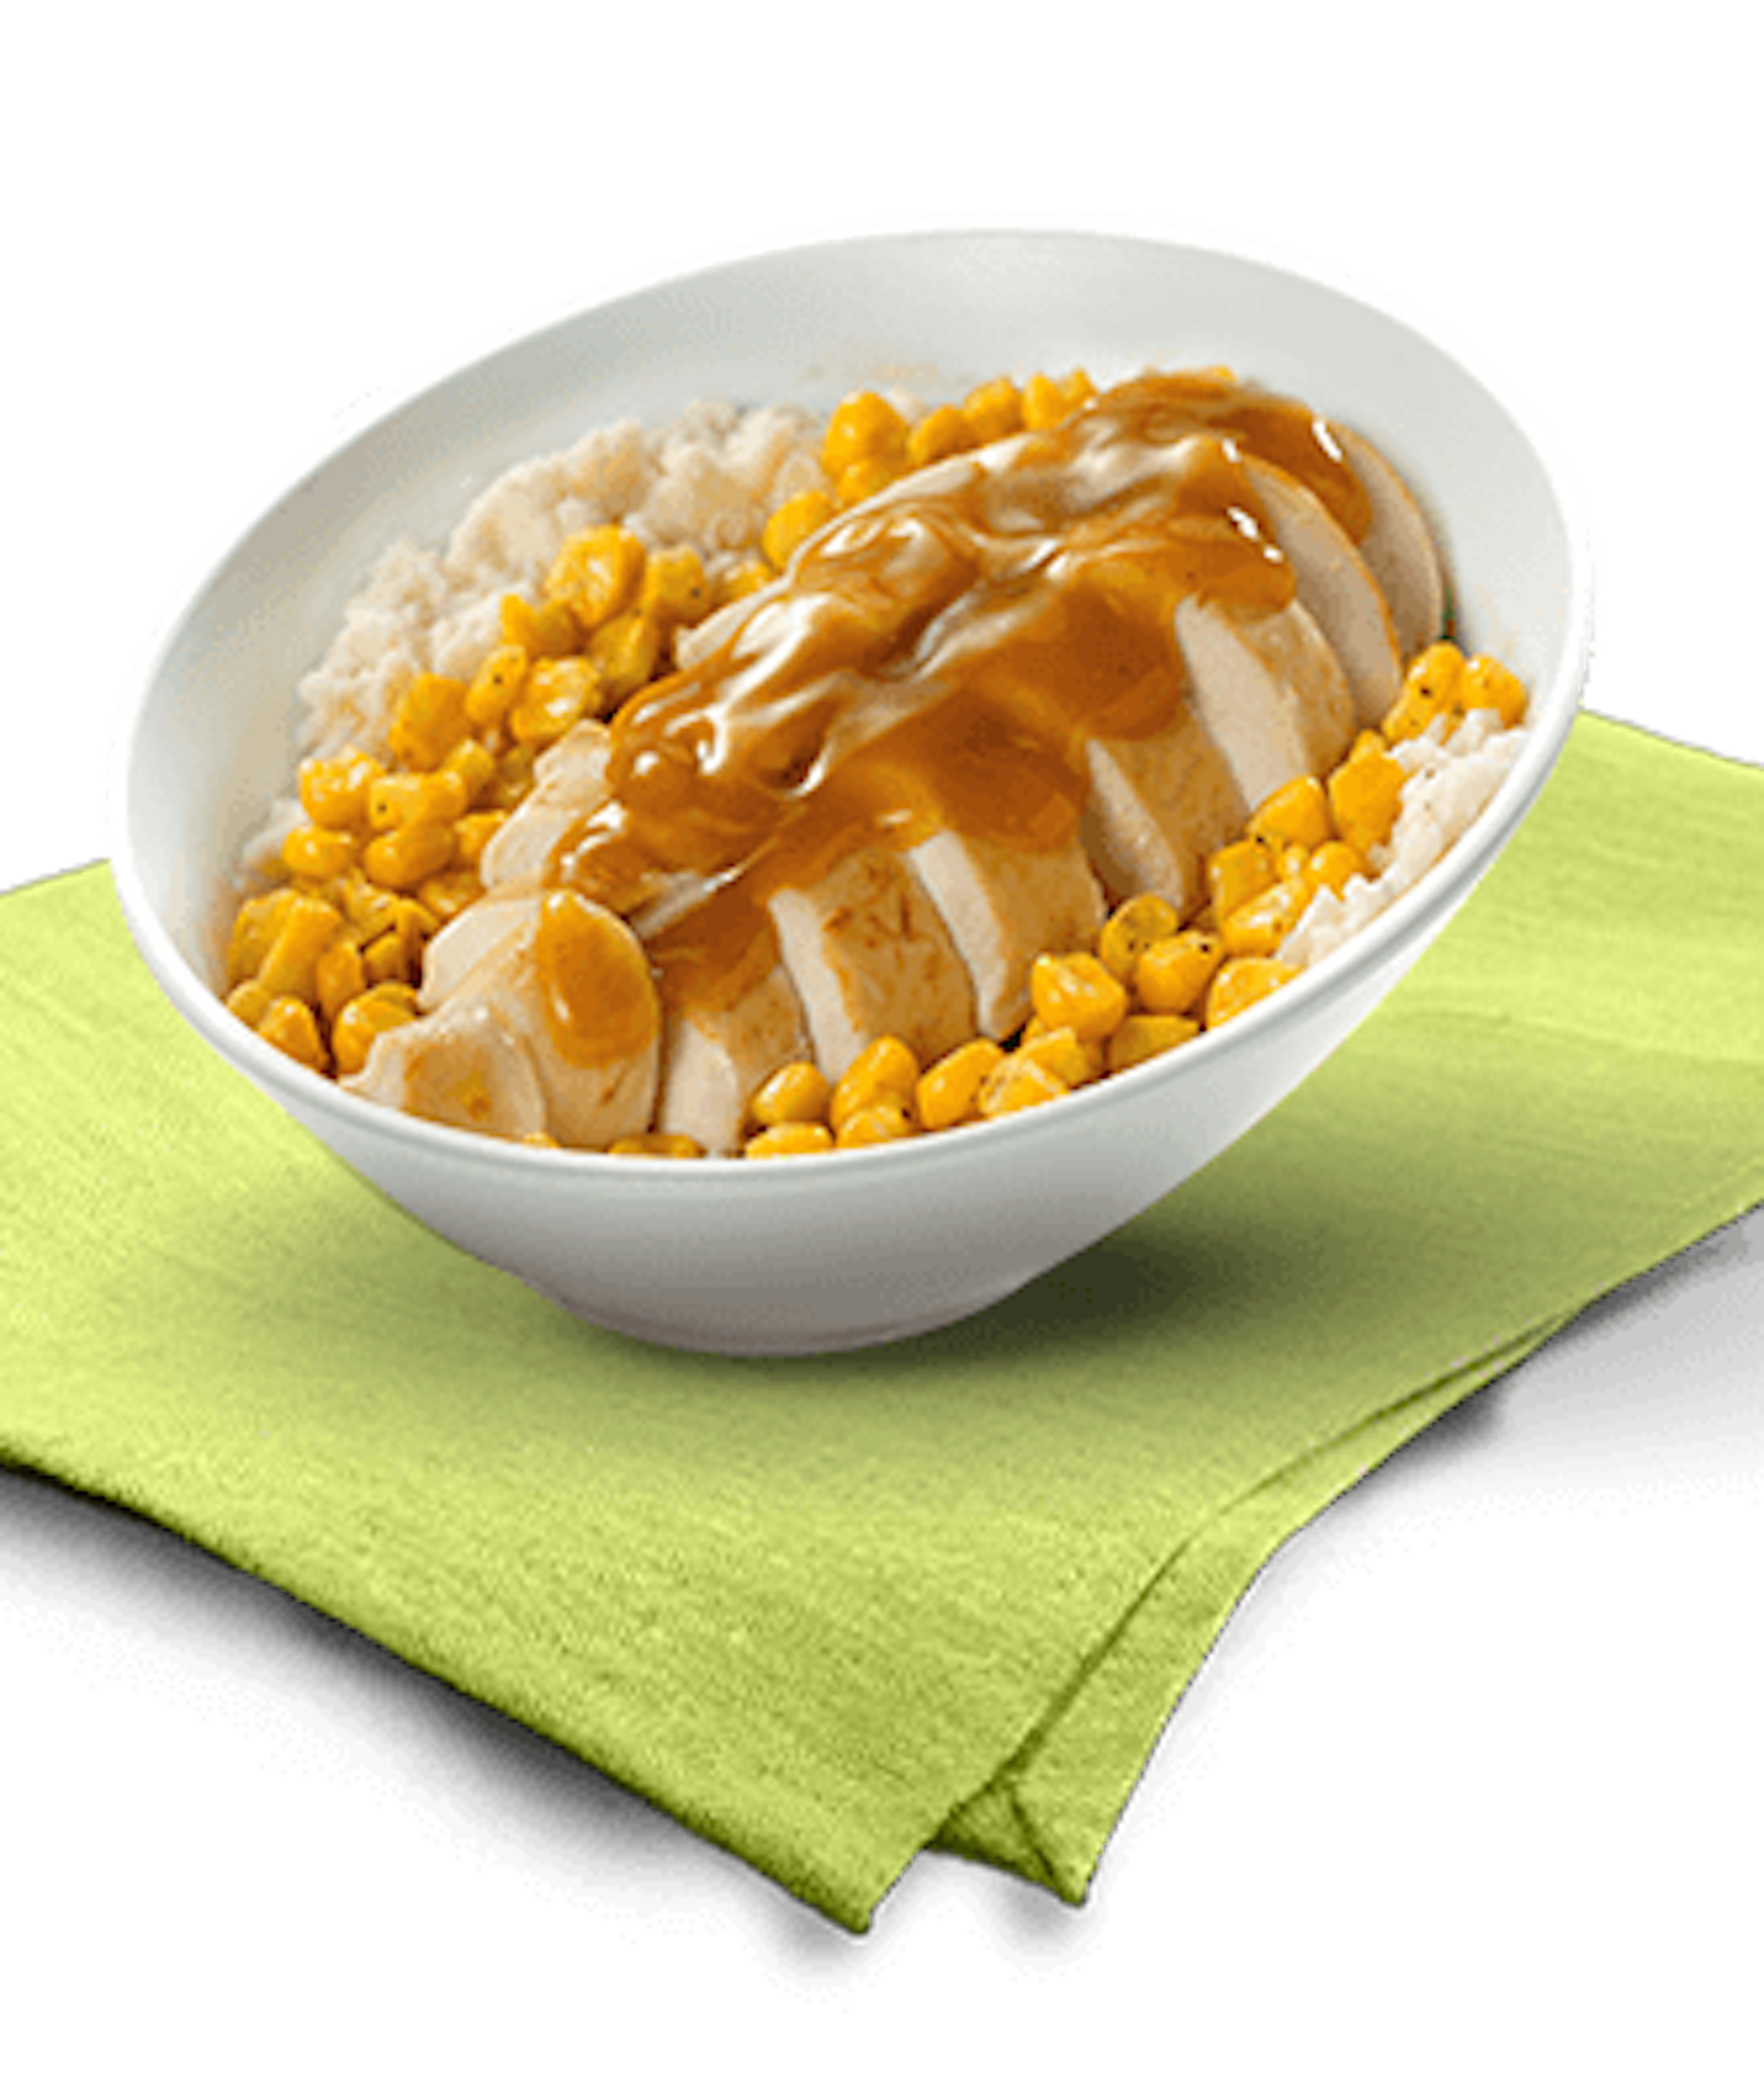 29 Healthy Fast Food Options Best Choices To Eat Healthy